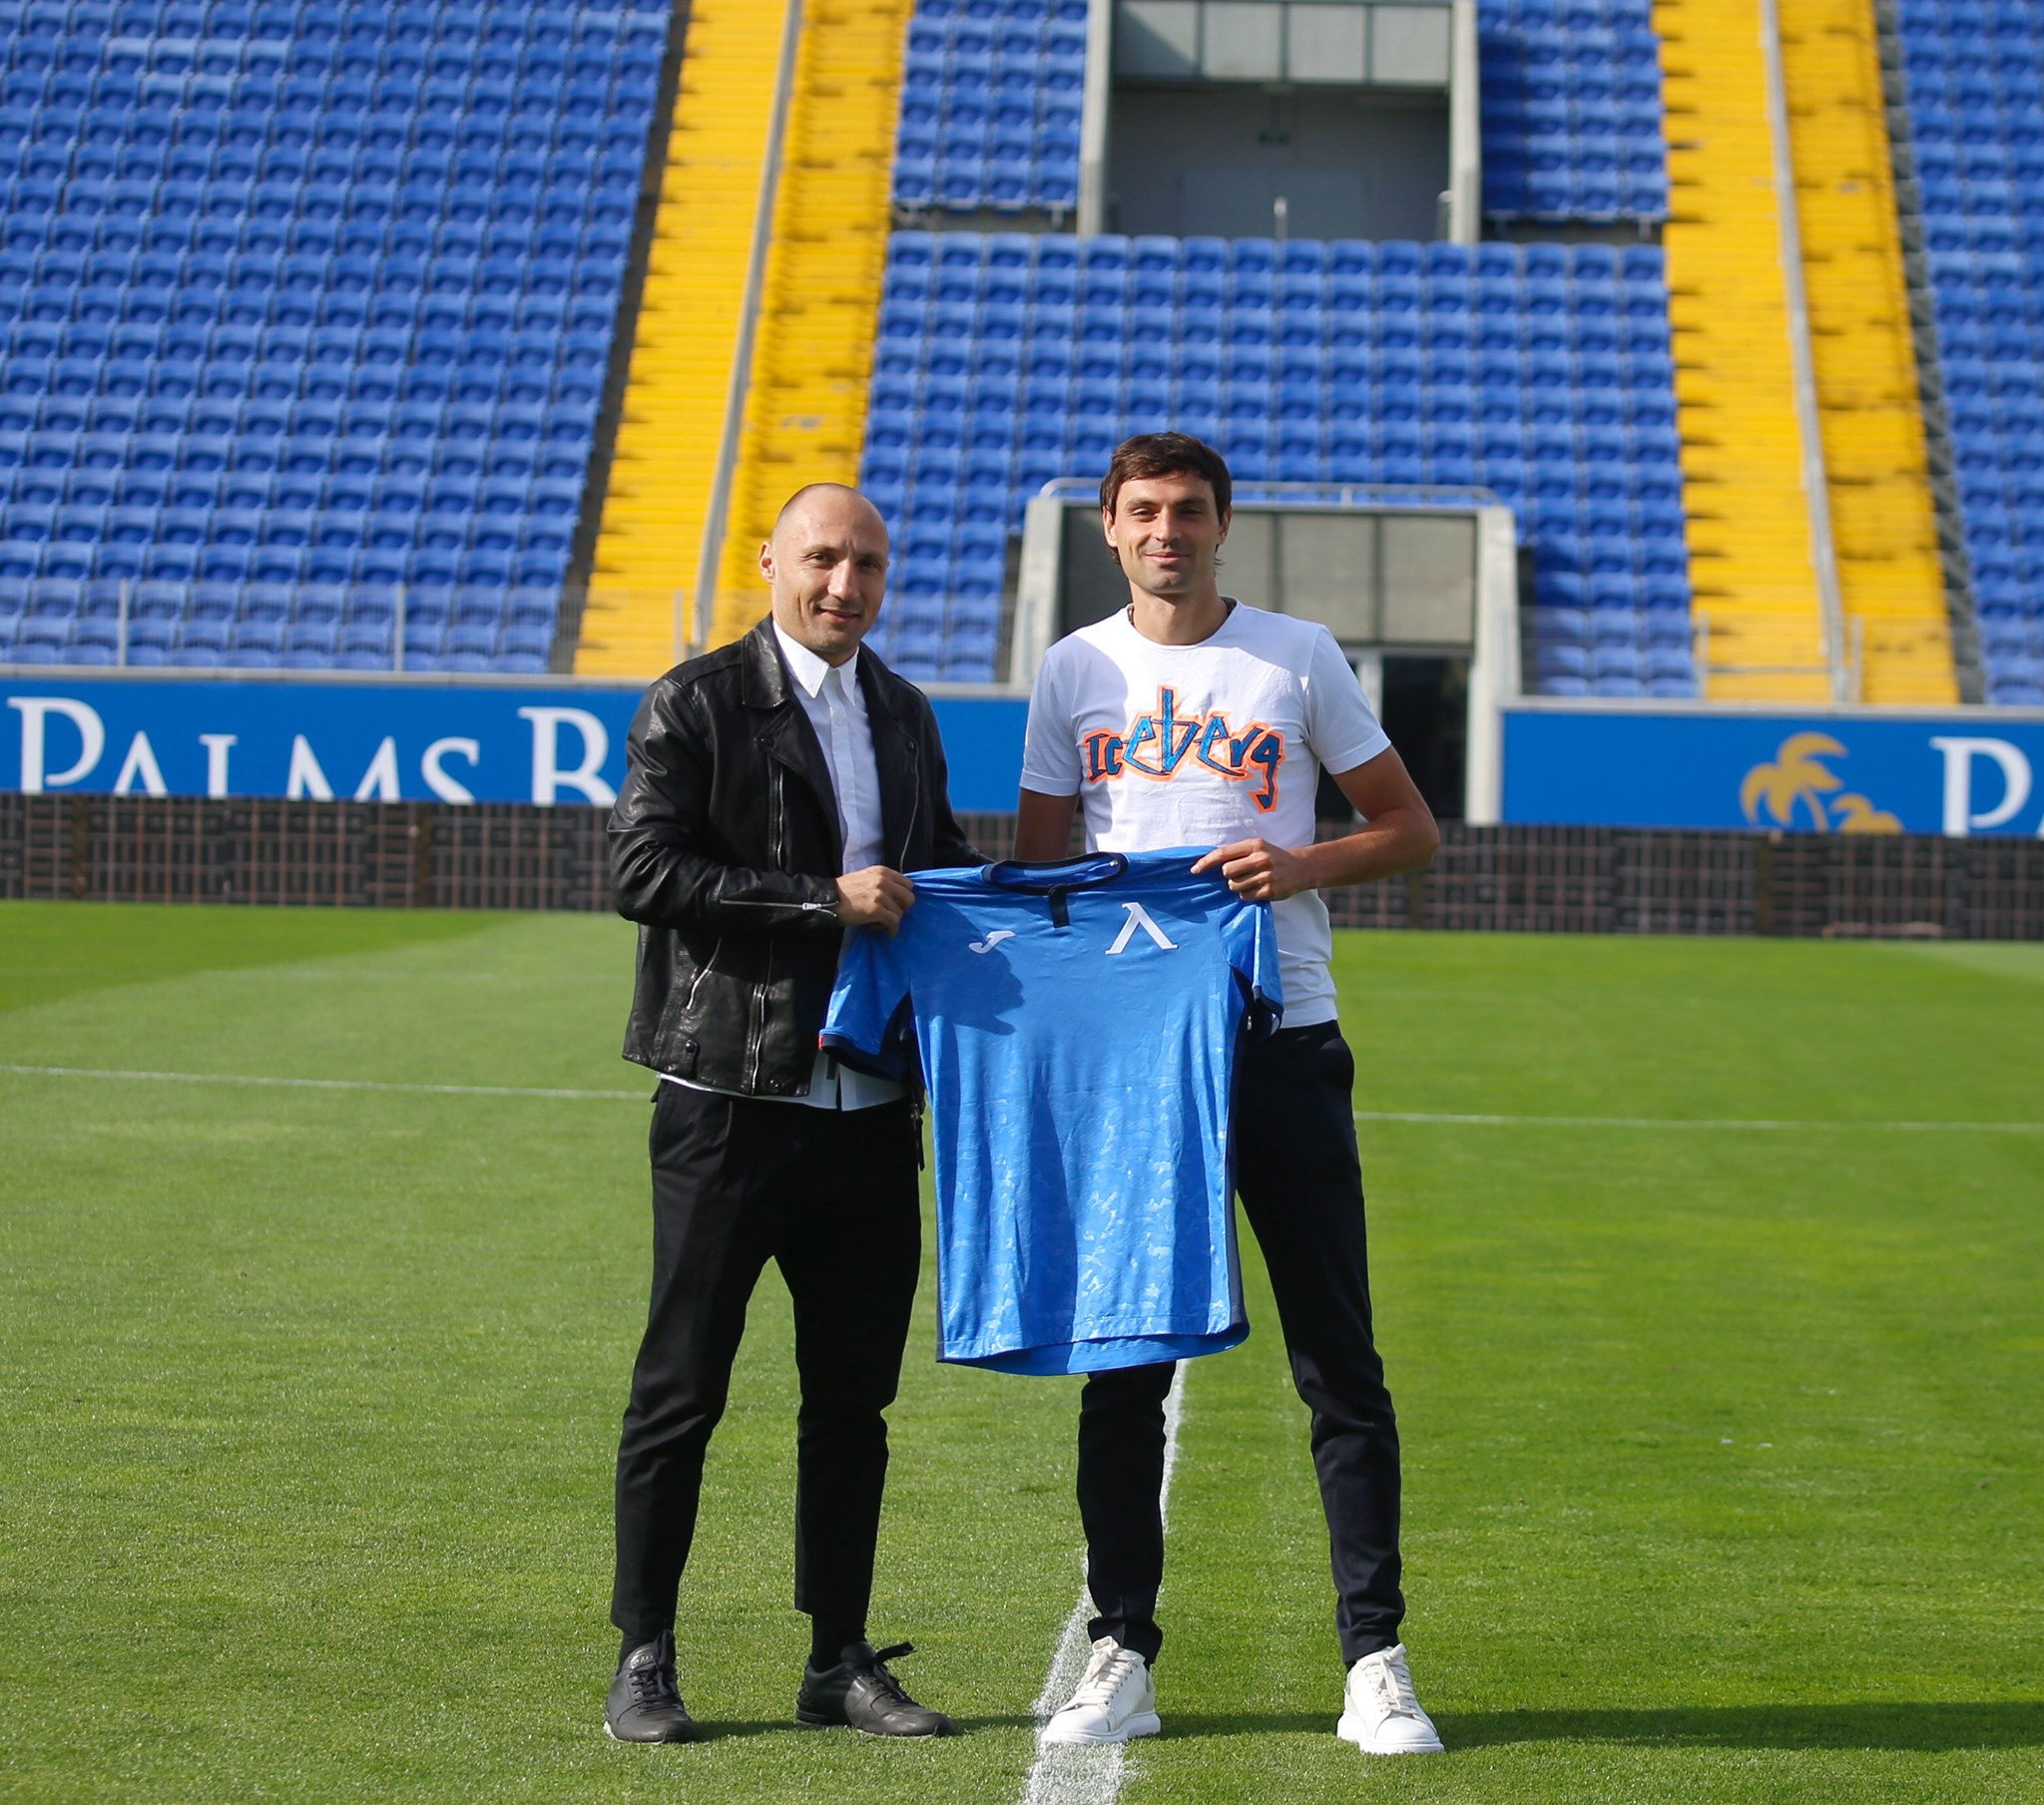 Martin Raynov Signed A New Contract With PFC Levski